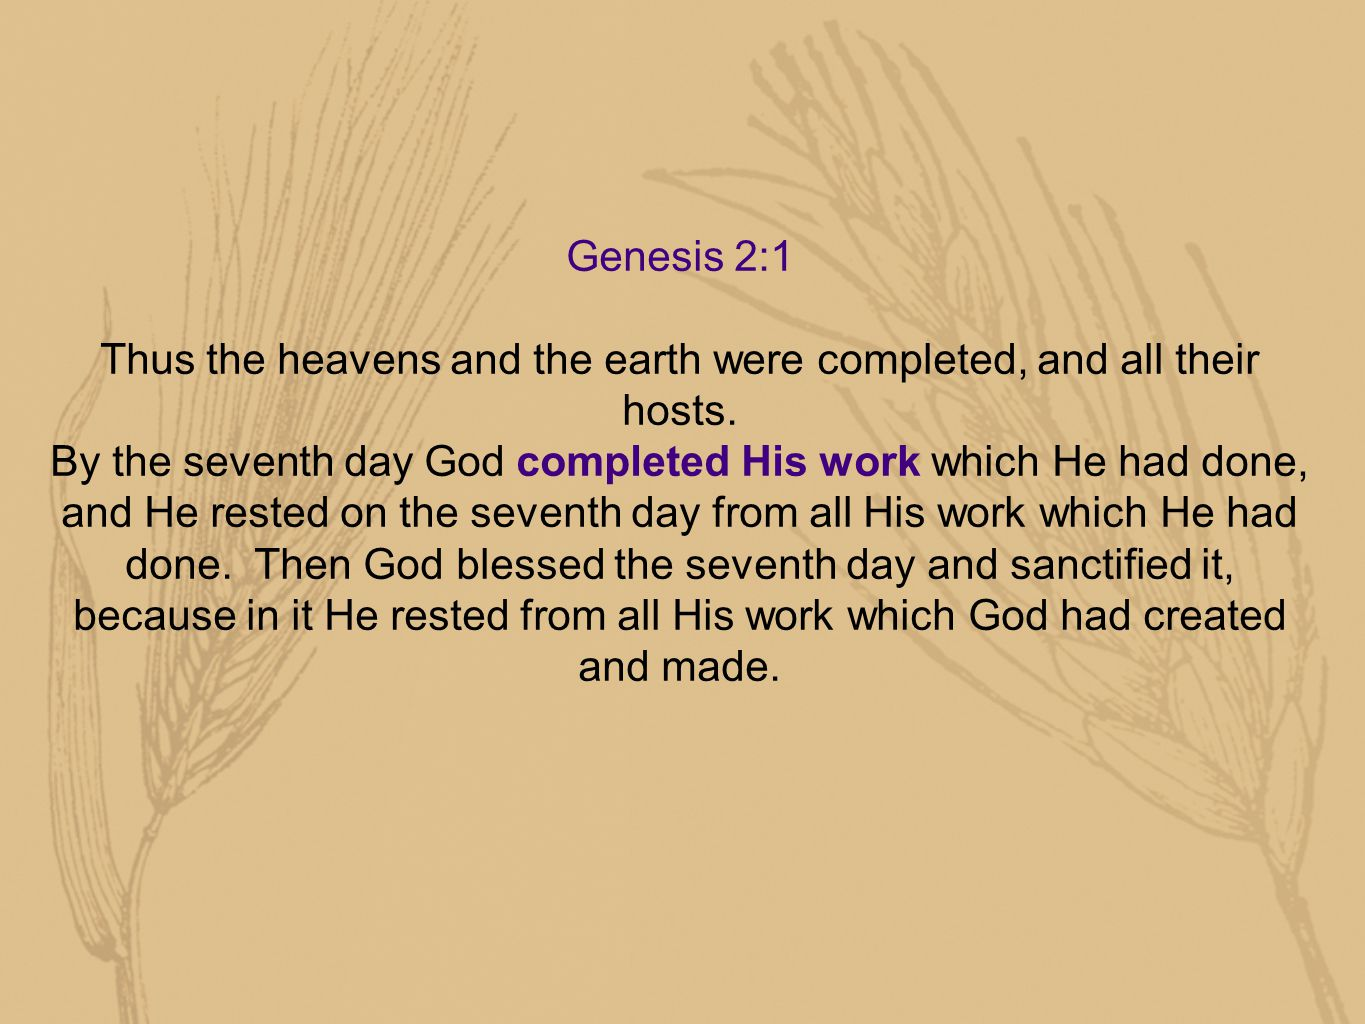 Genesis 2:1 Thus the heavens and the earth were completed, and all their hosts.